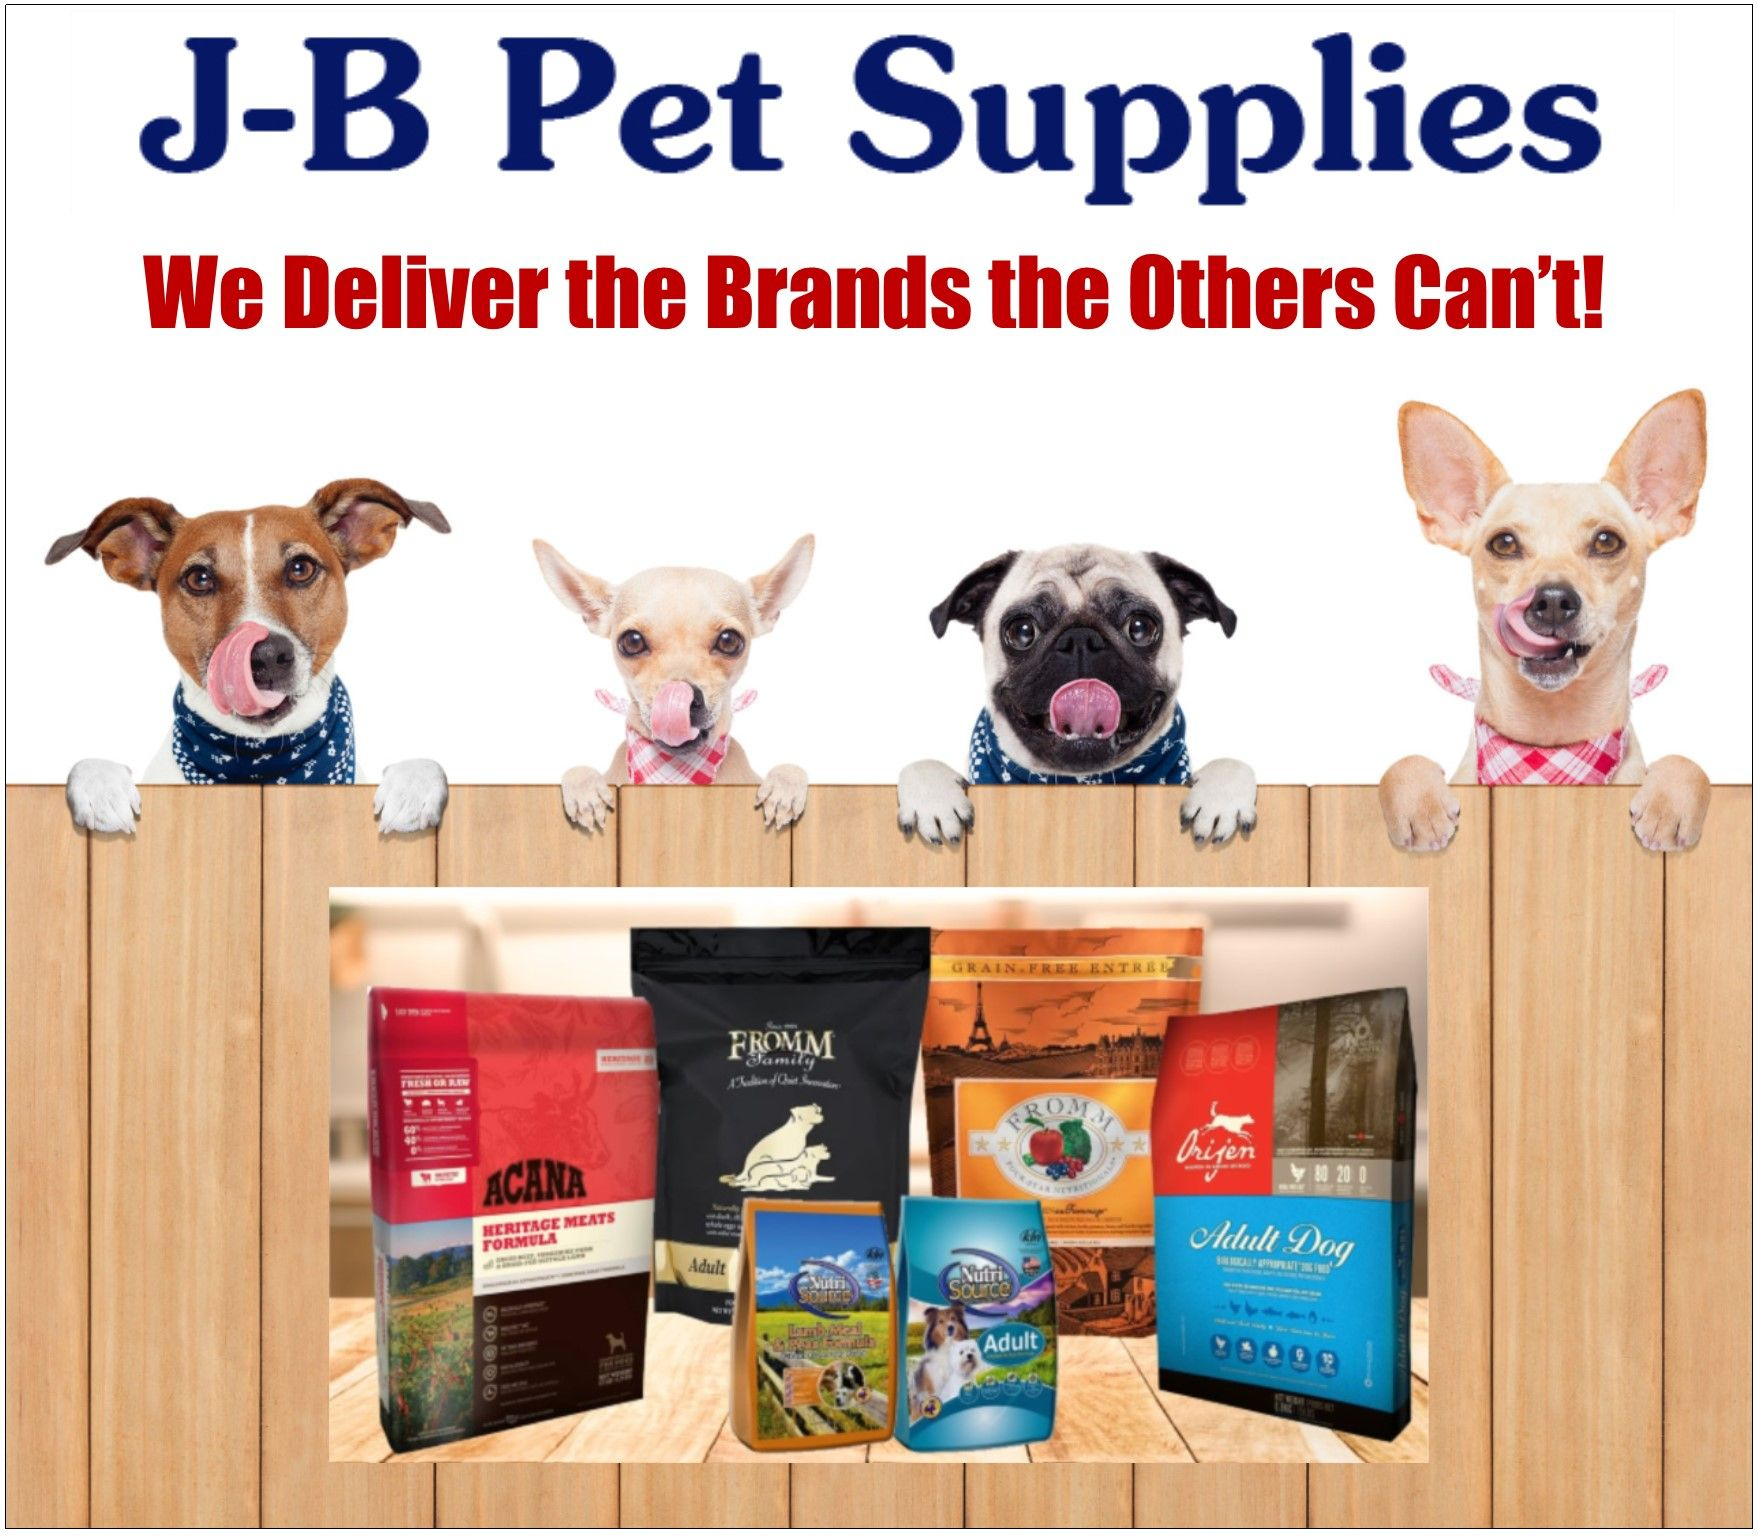 J B Pet Supplies Delivers The Brands You Cannot Buy At The Online